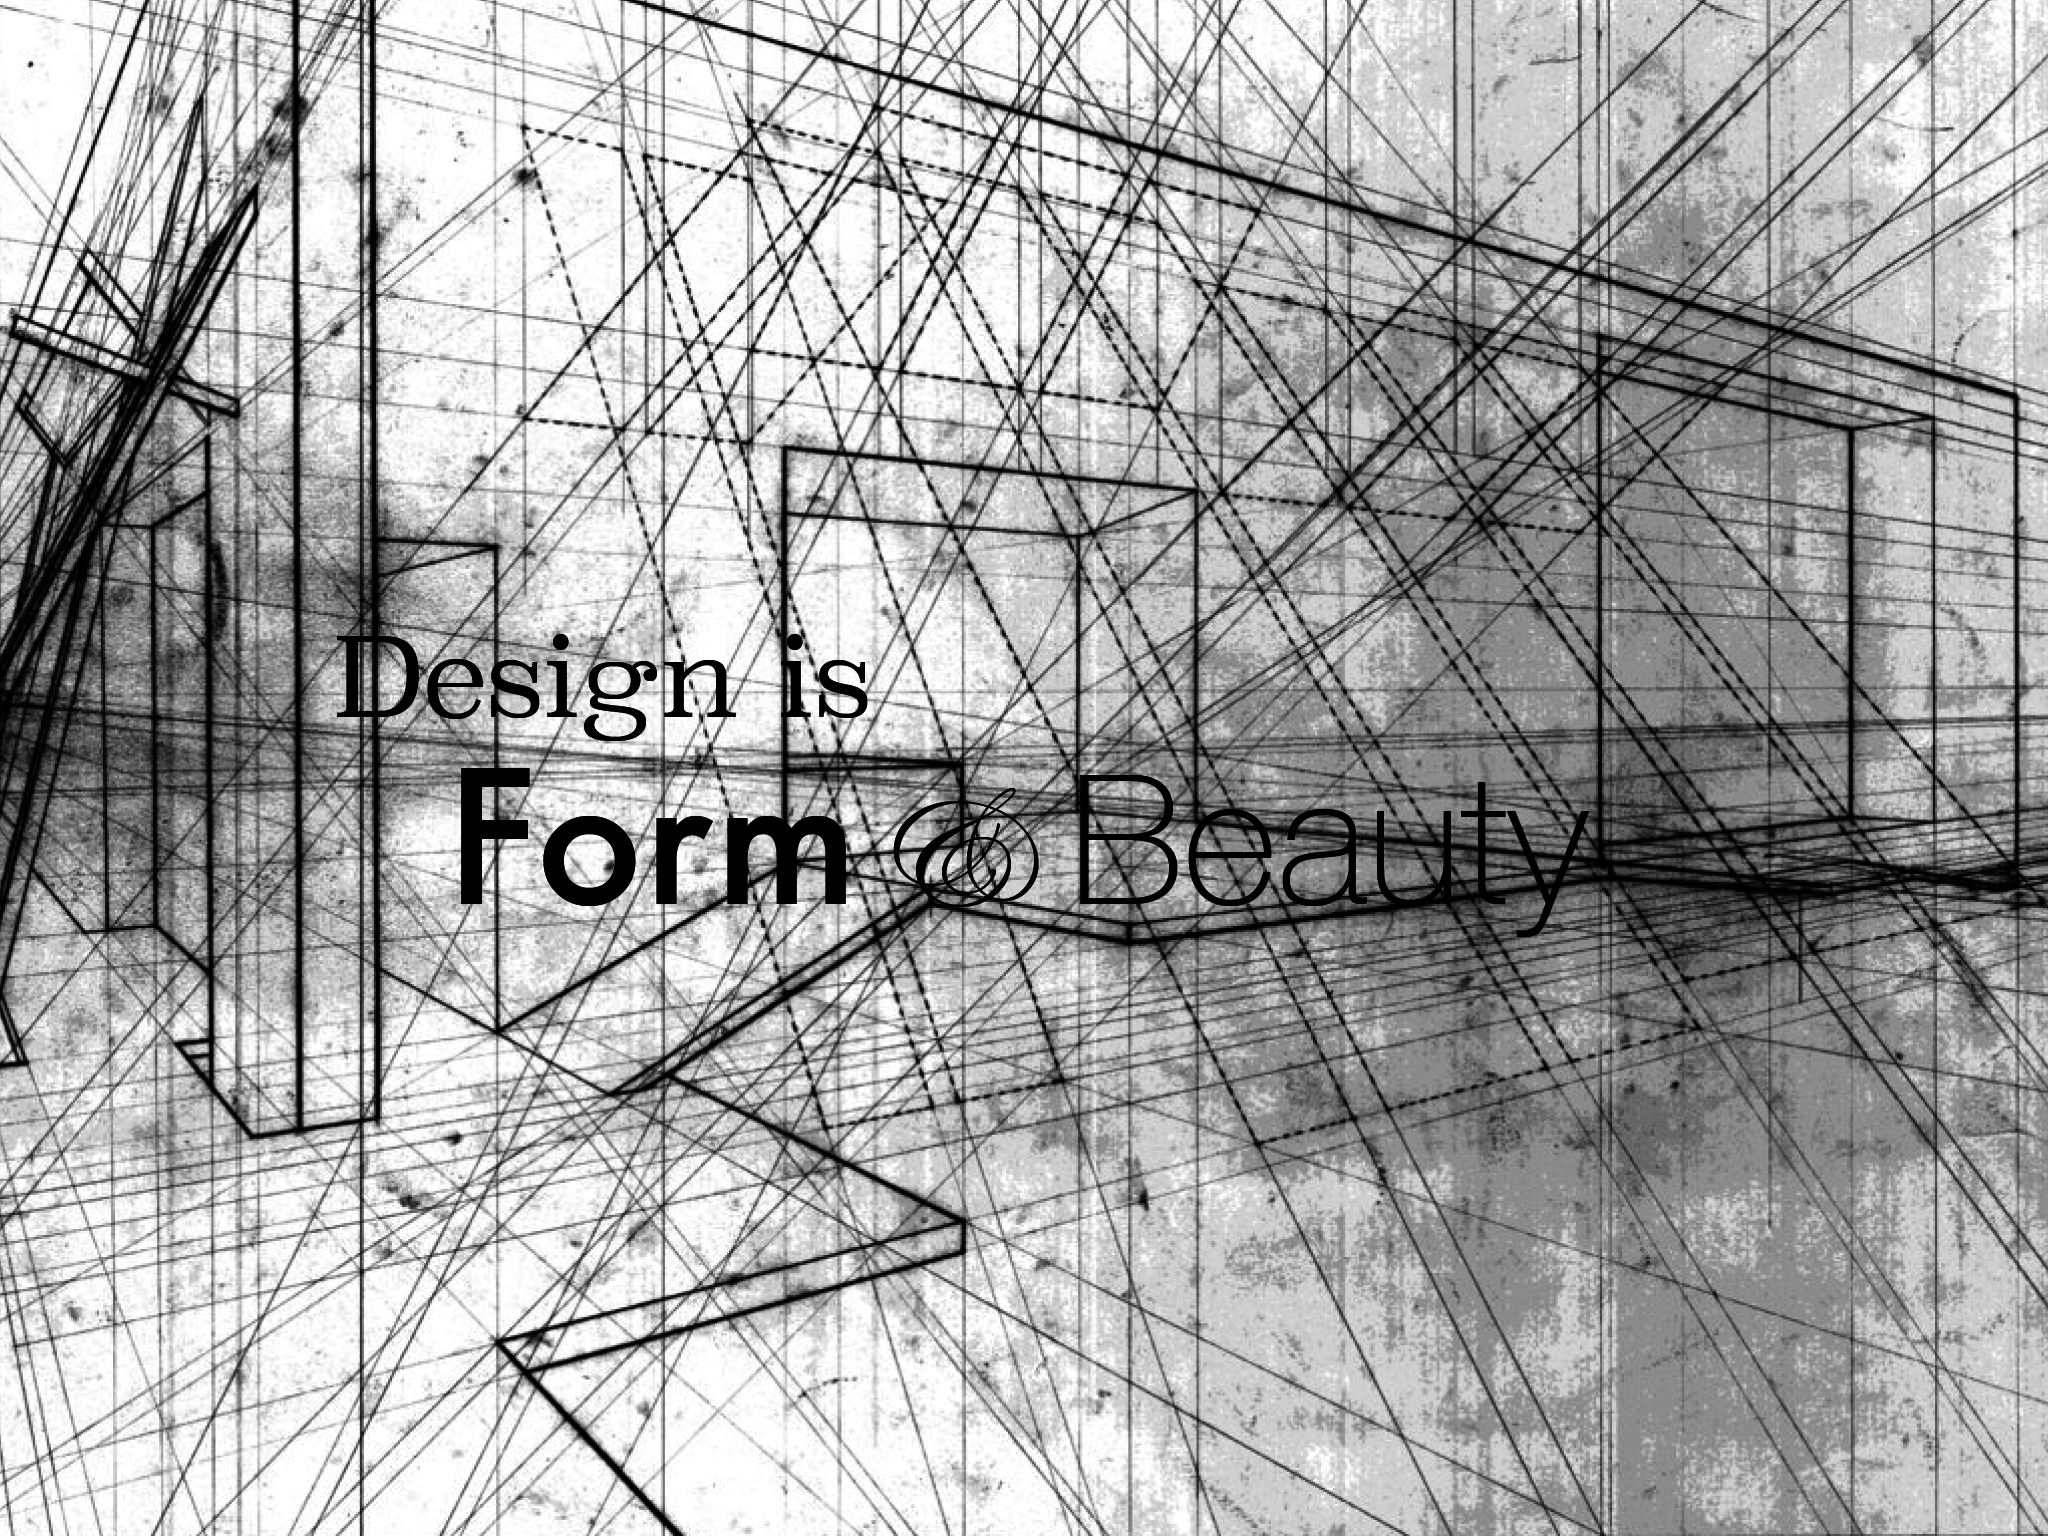 Design is form and beauty8